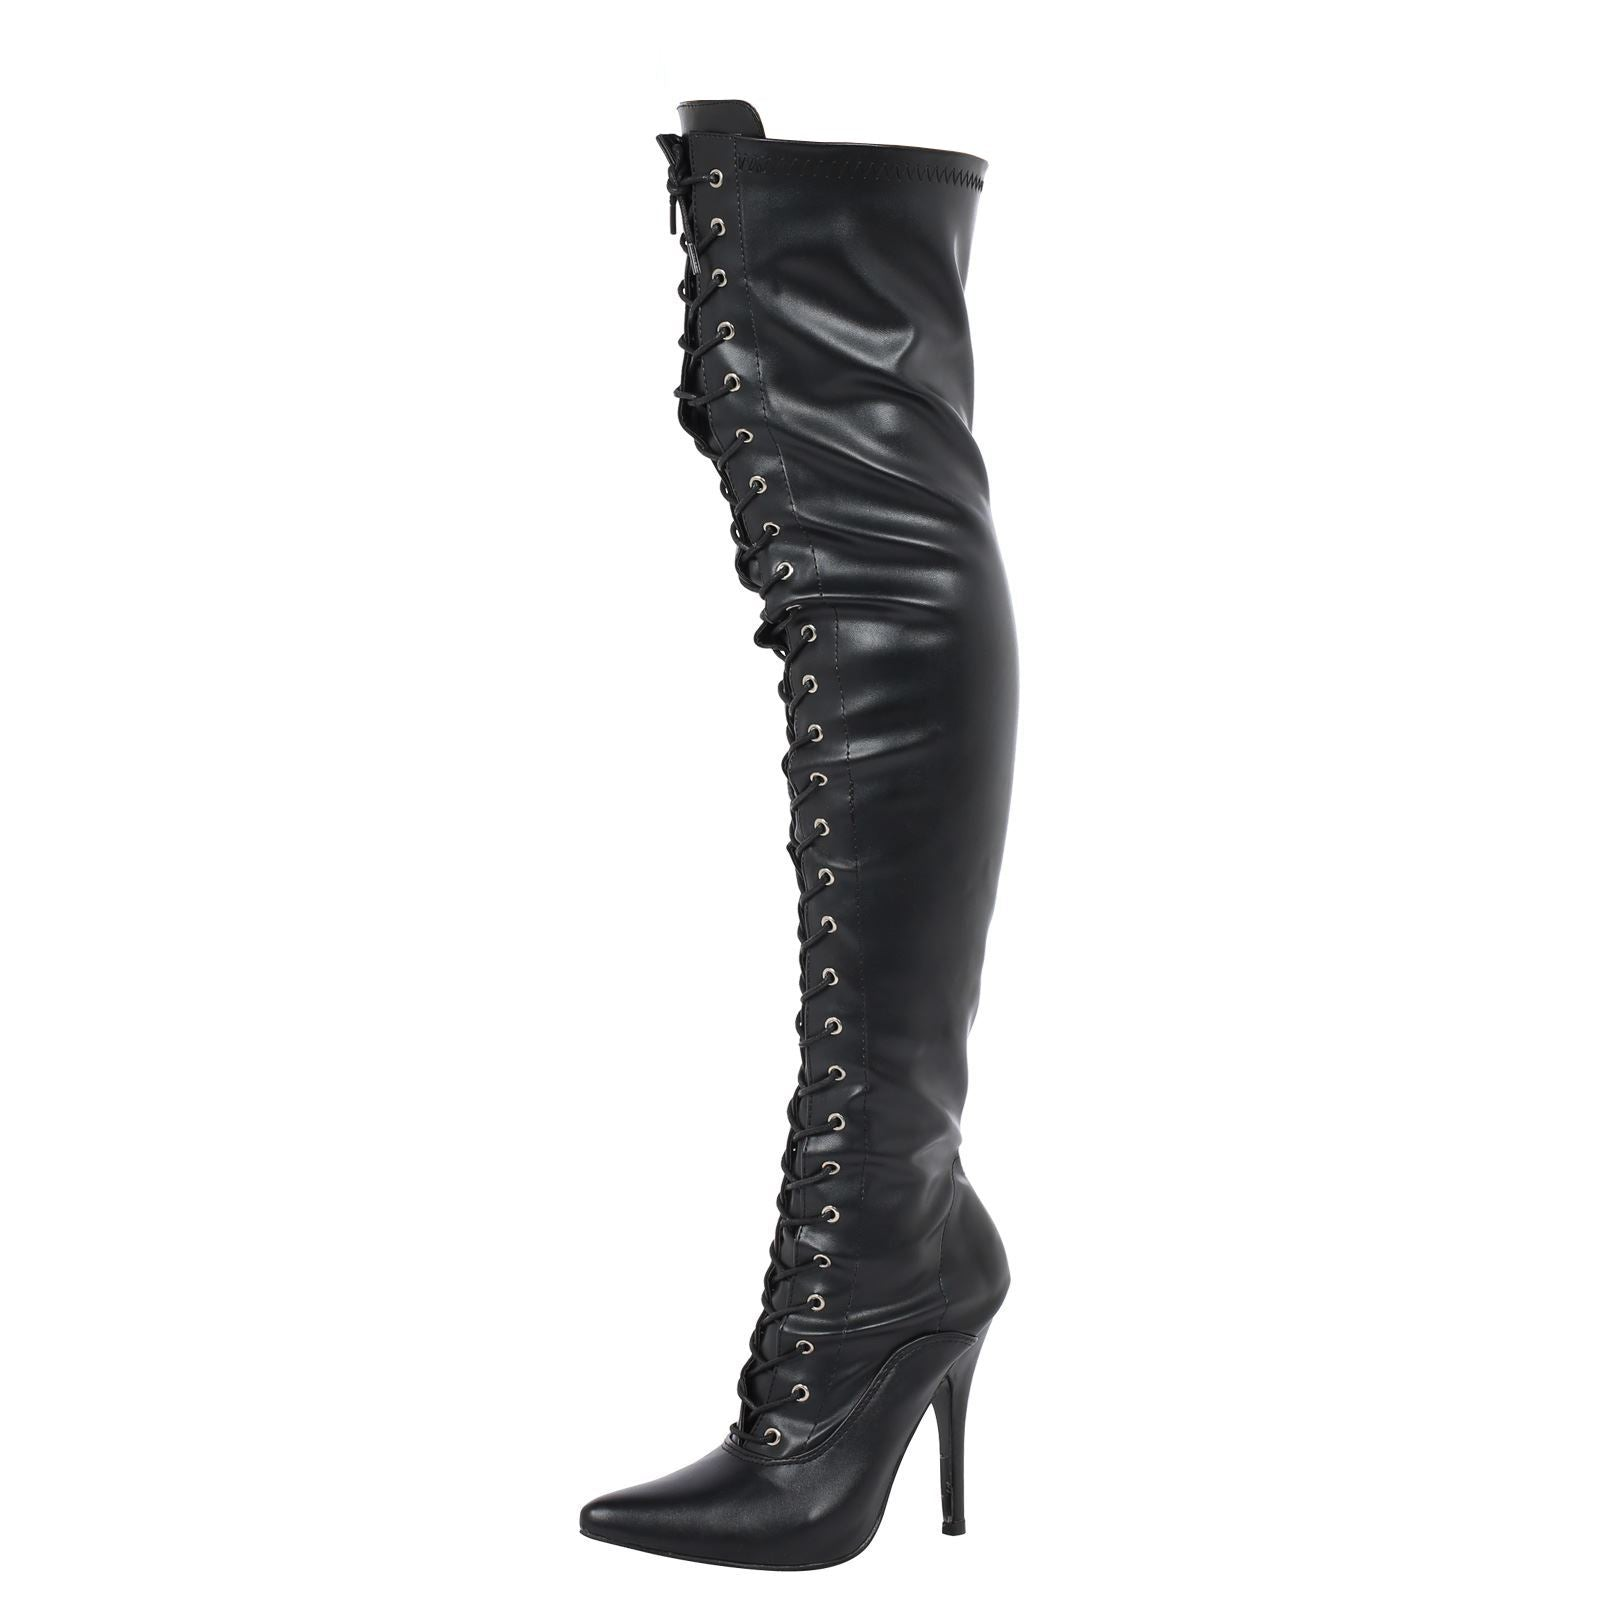 Destiny Lace Up Thigh High Boots in Black Faux Leather